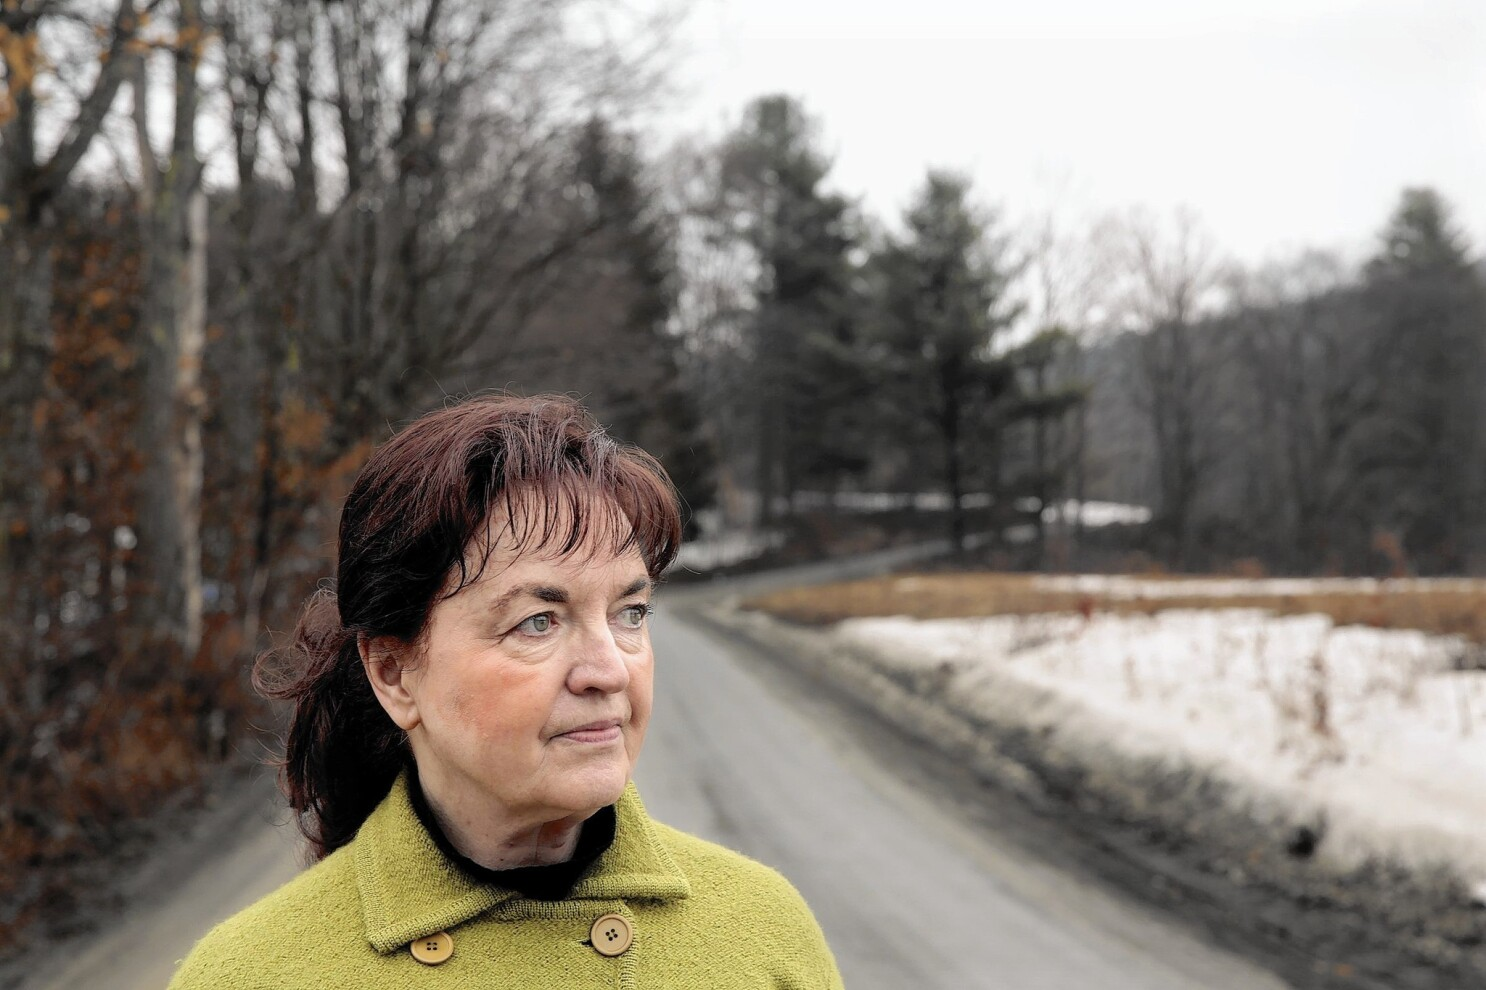 In New York State Fracking Ban Fuels Secession Talk Los Angeles Times